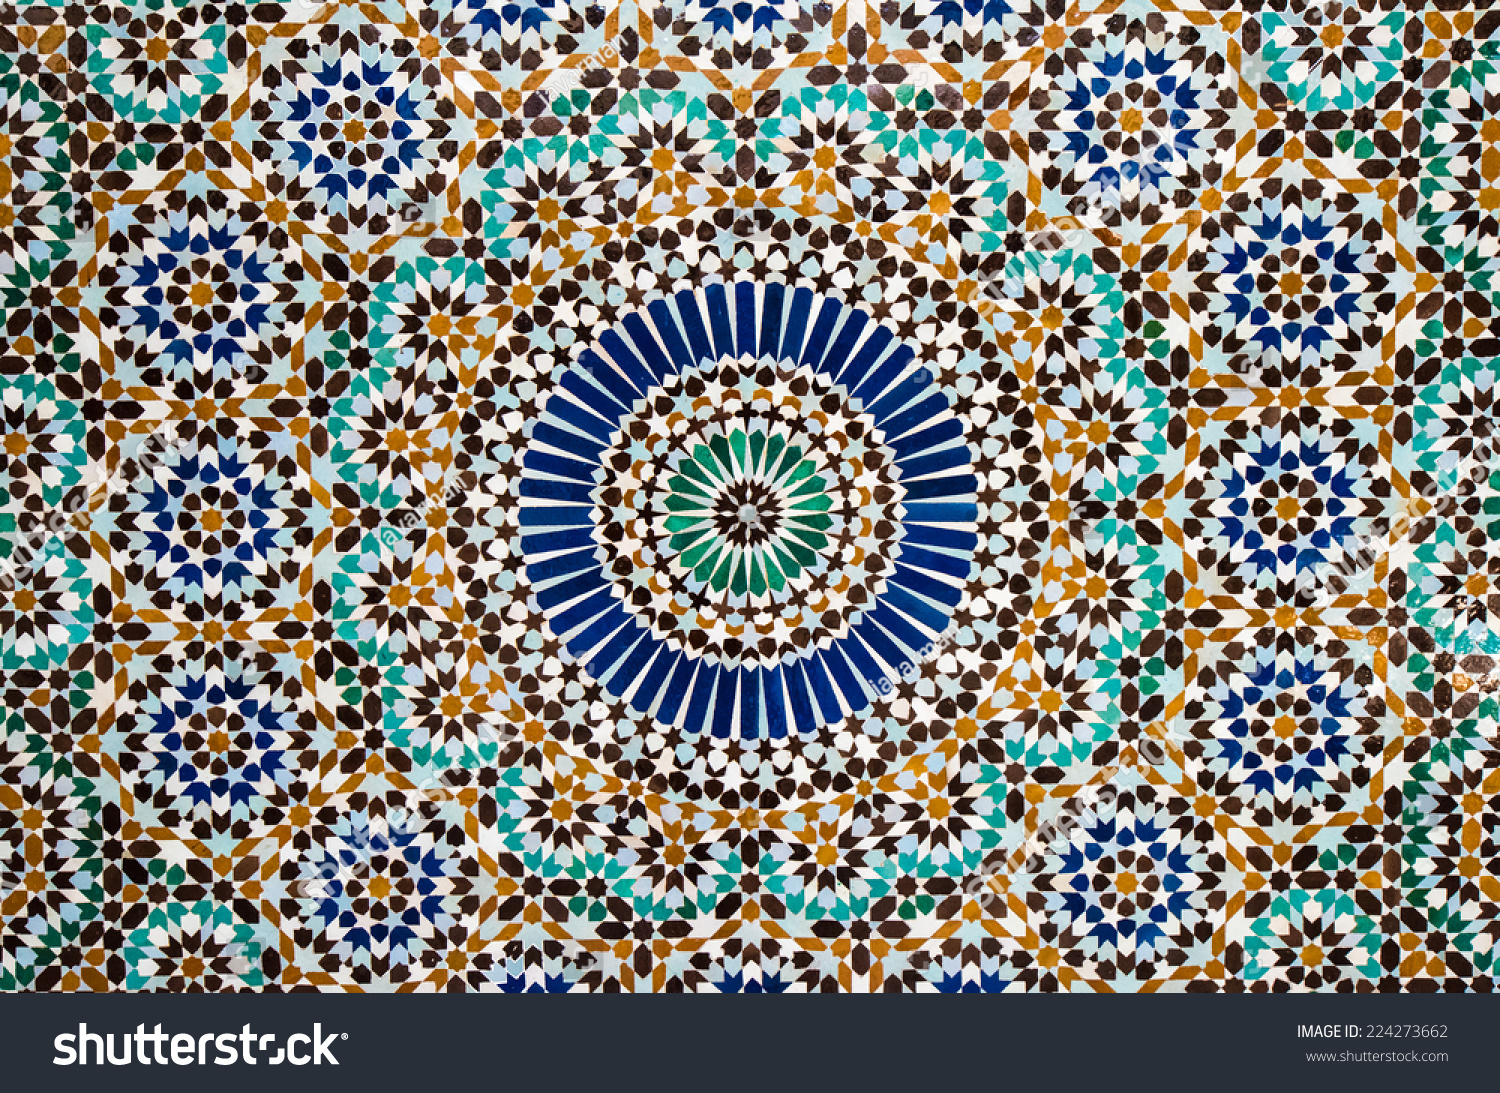 moroccan tile background stock photo 224273662 shutterstock